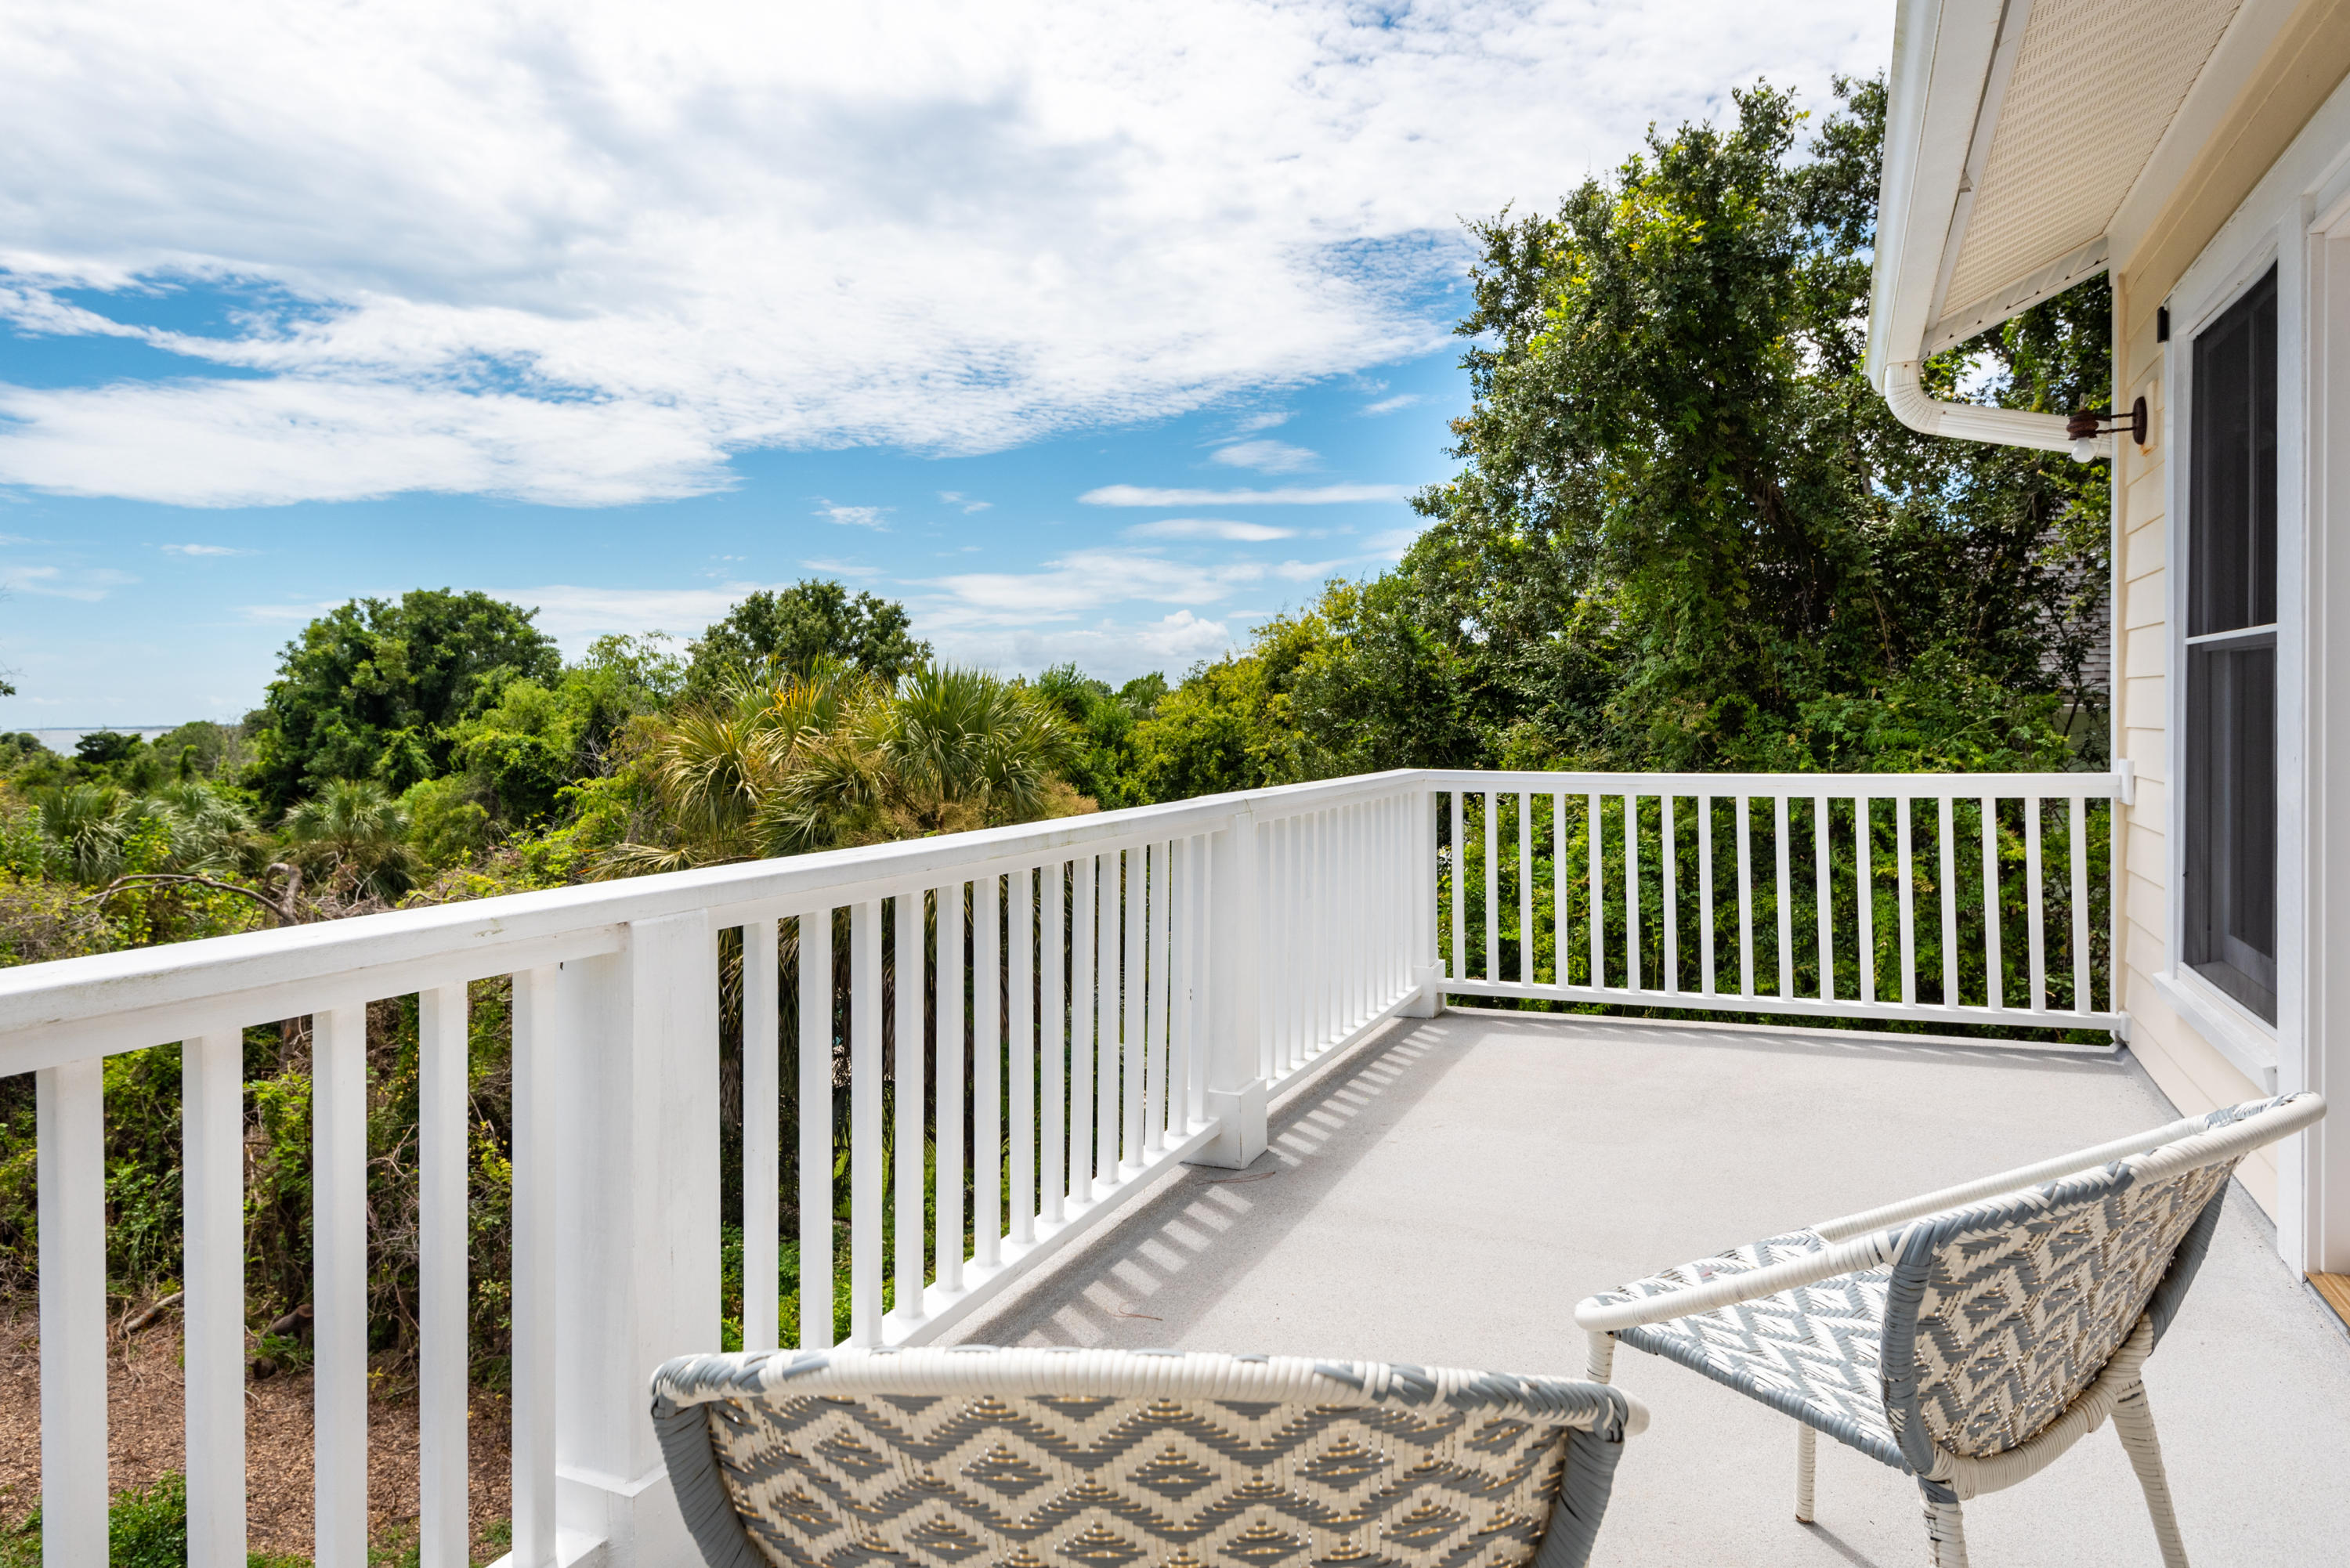 Sullivans Island Homes For Sale - 1651 Atlantic, Sullivans Island, SC - 26